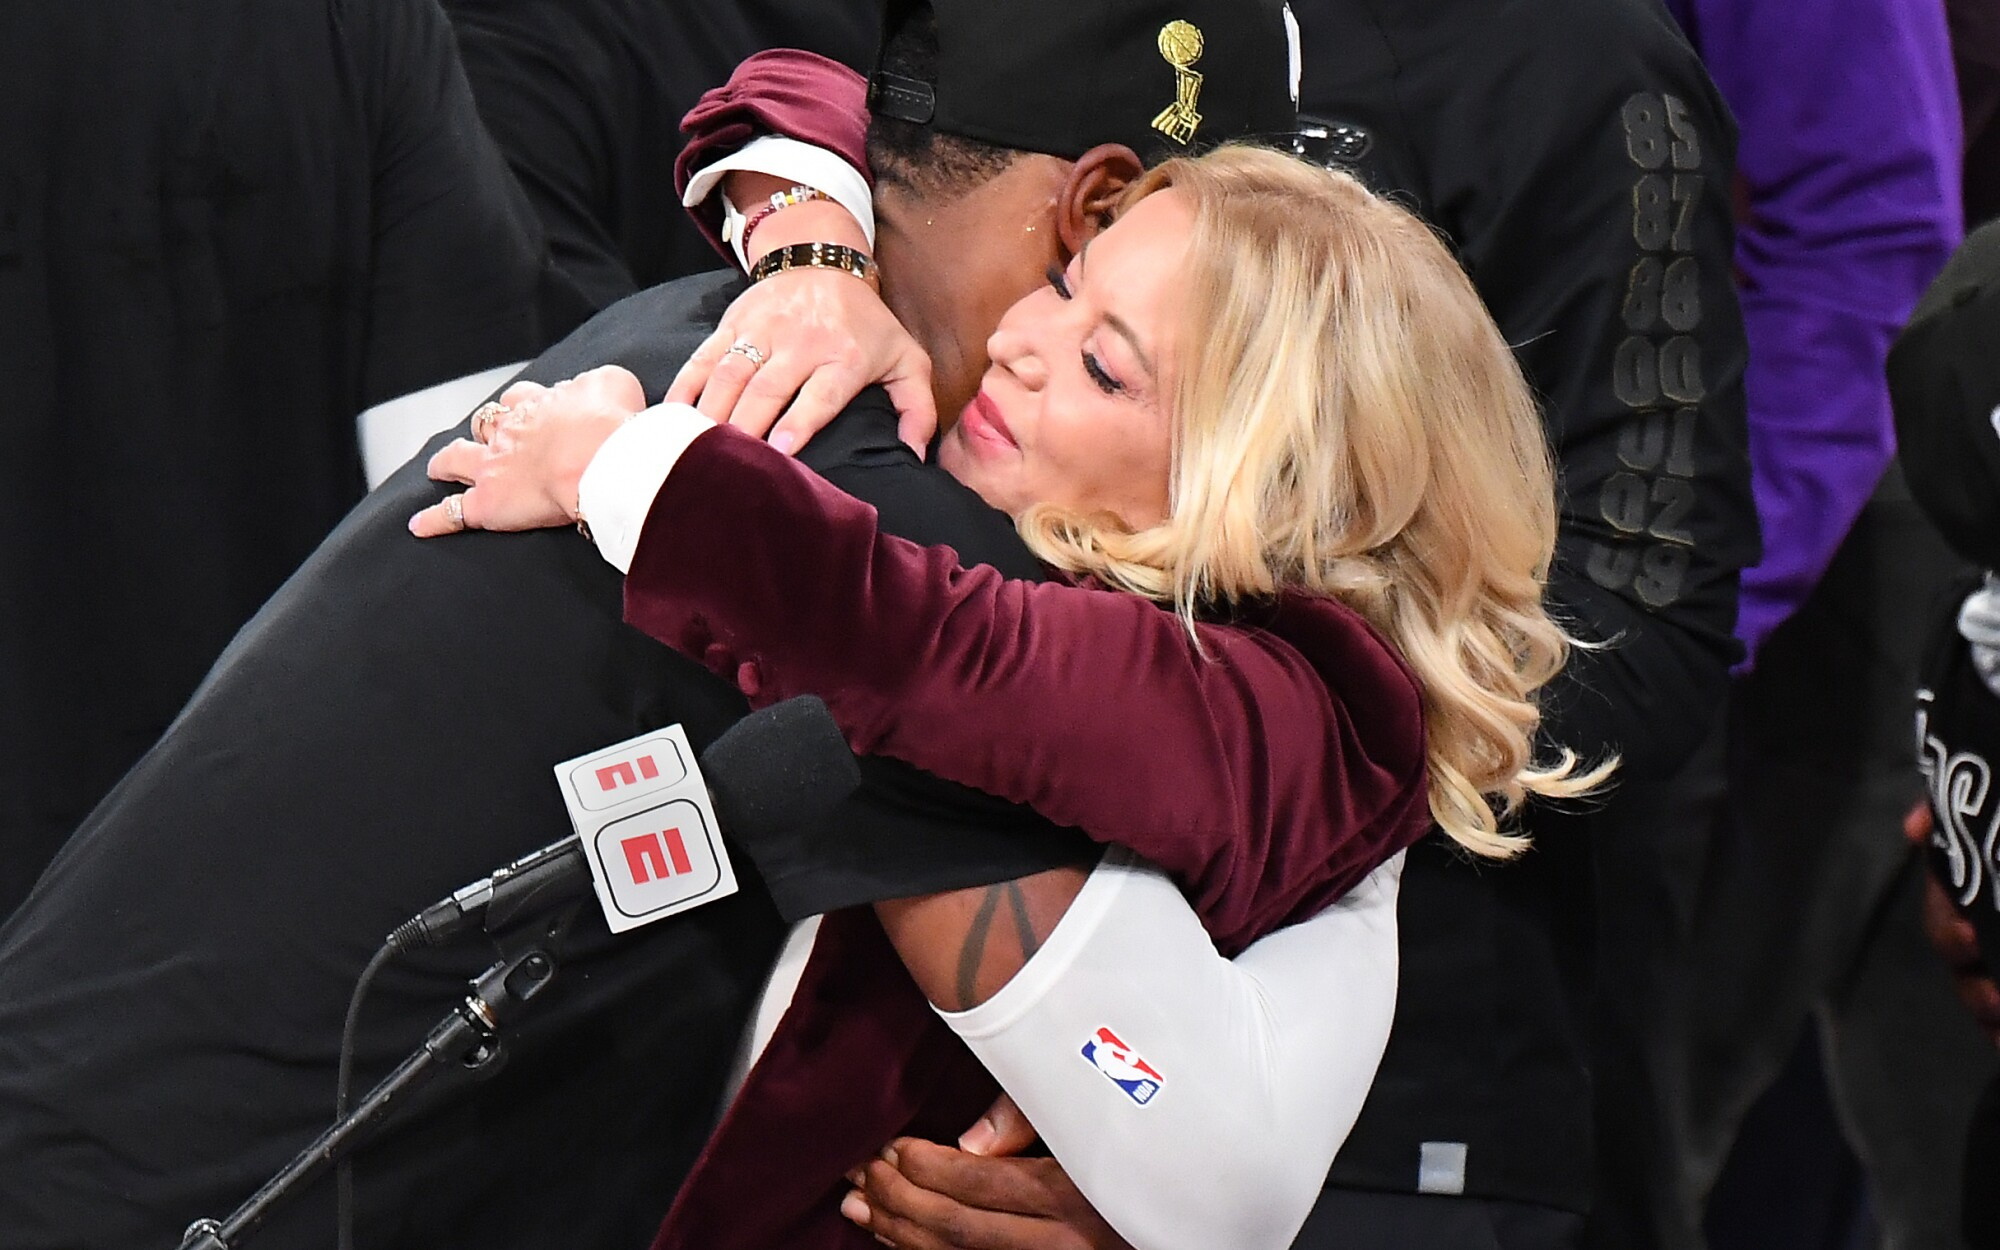 Lakers co-owner Jeanie Buss gets a hug from LeBron James after the team won the NBA championship.